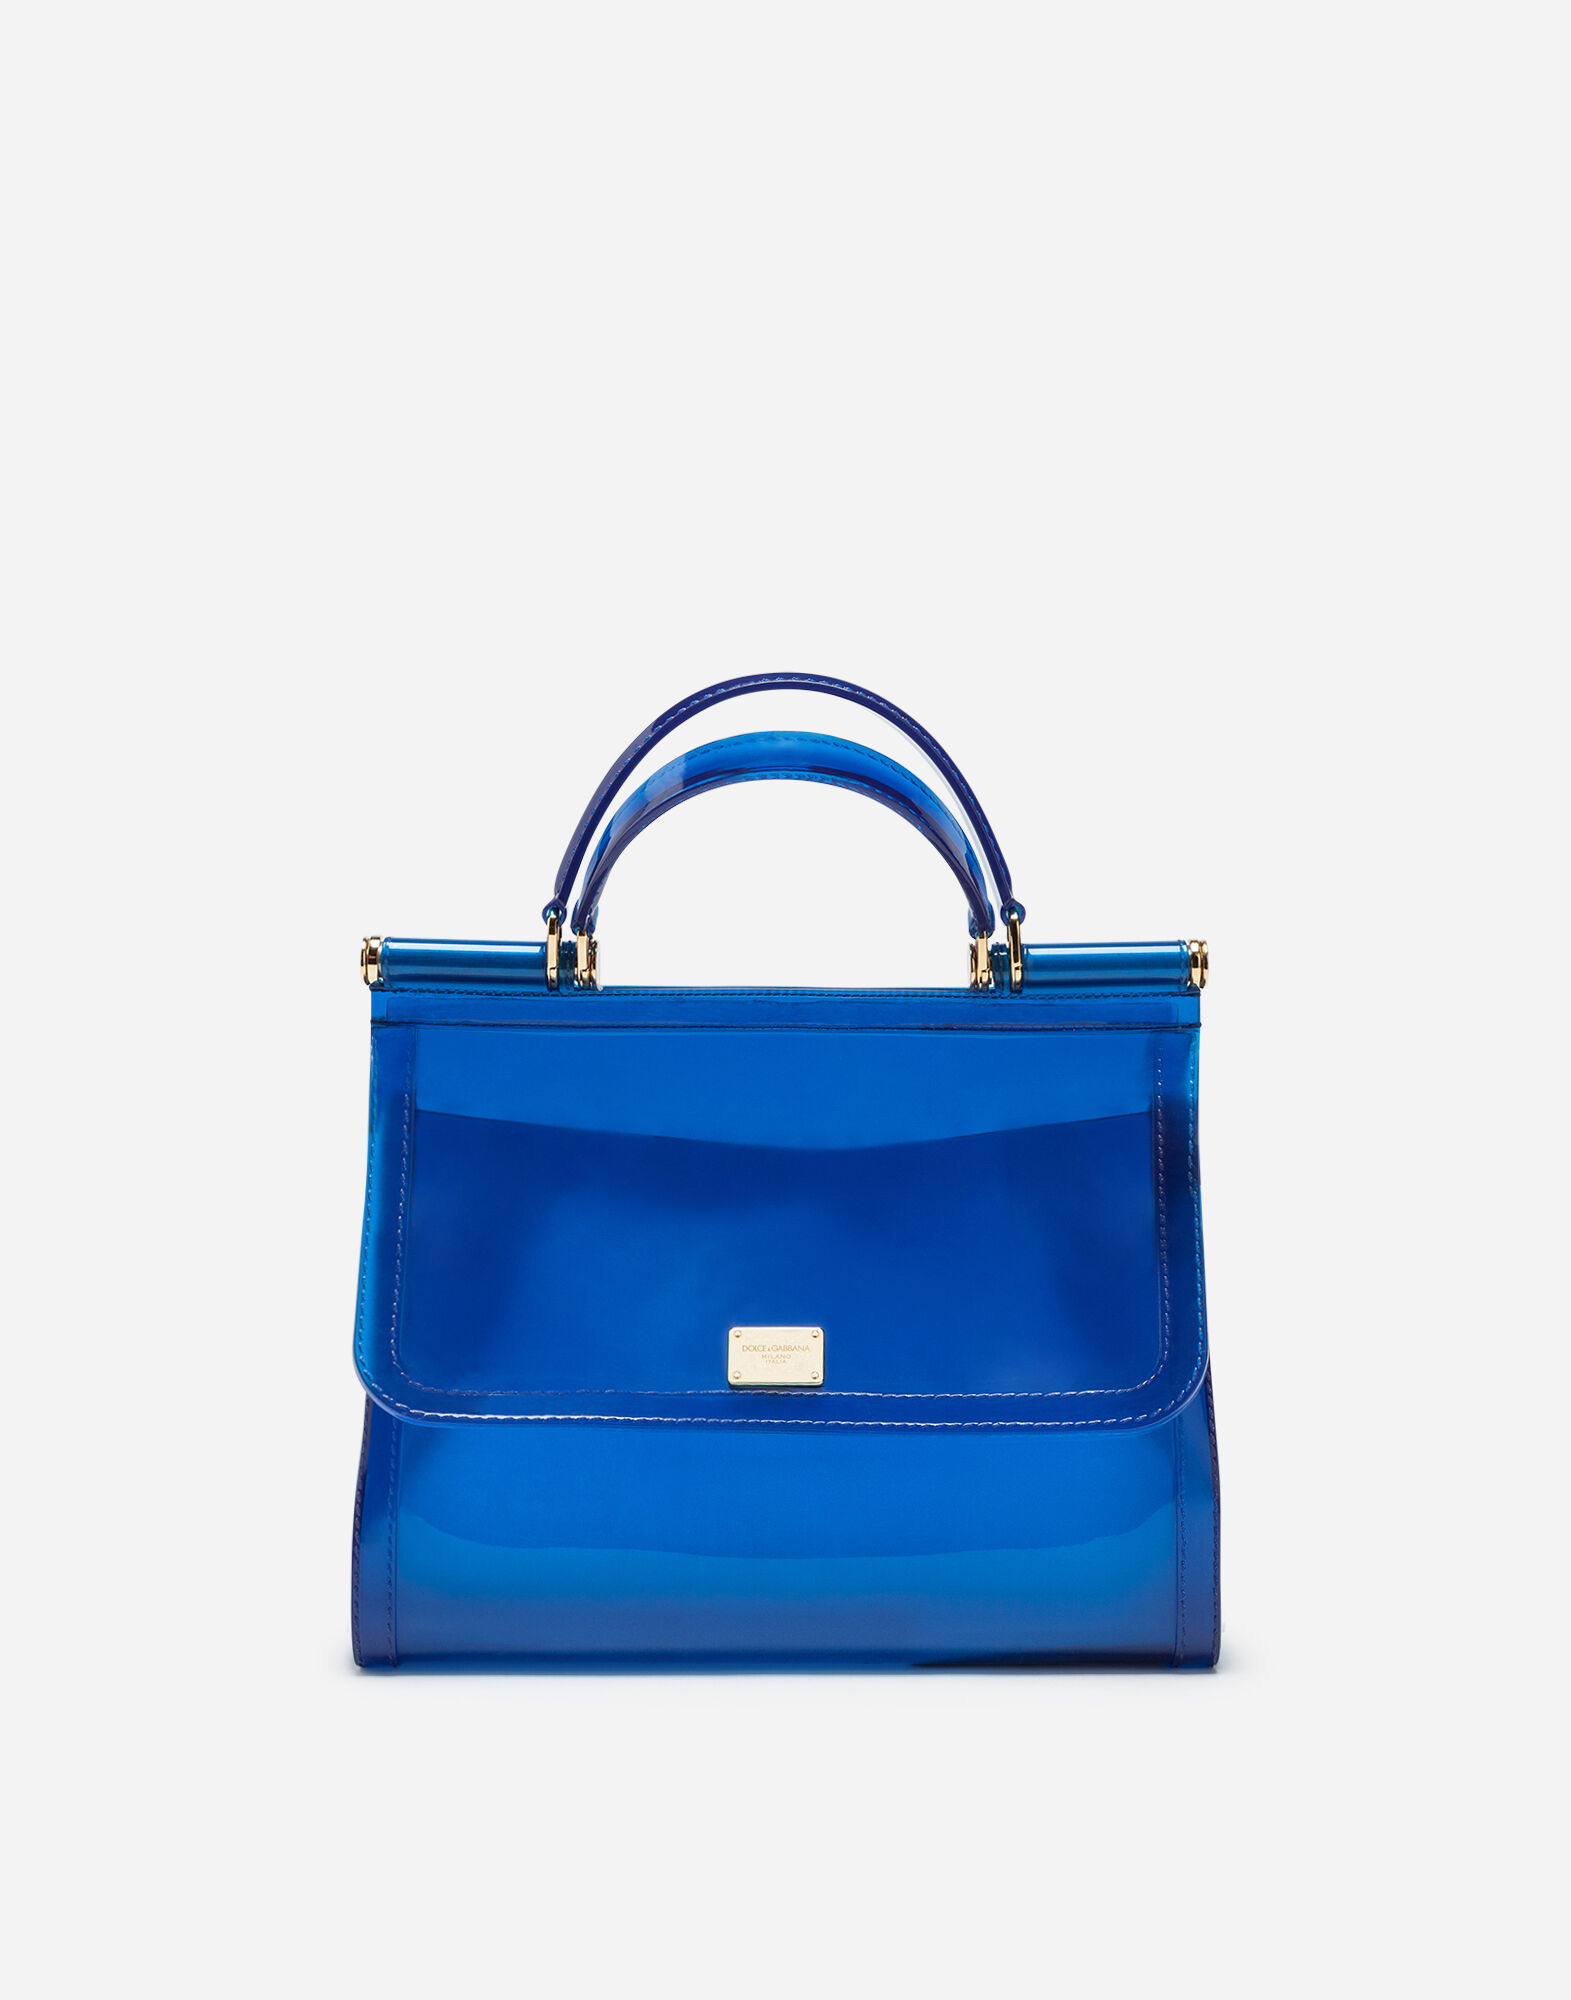 1971c98cc0 Dolce   Gabbana Semi-Transparent Rubber Sicily Handbag In Blue ...